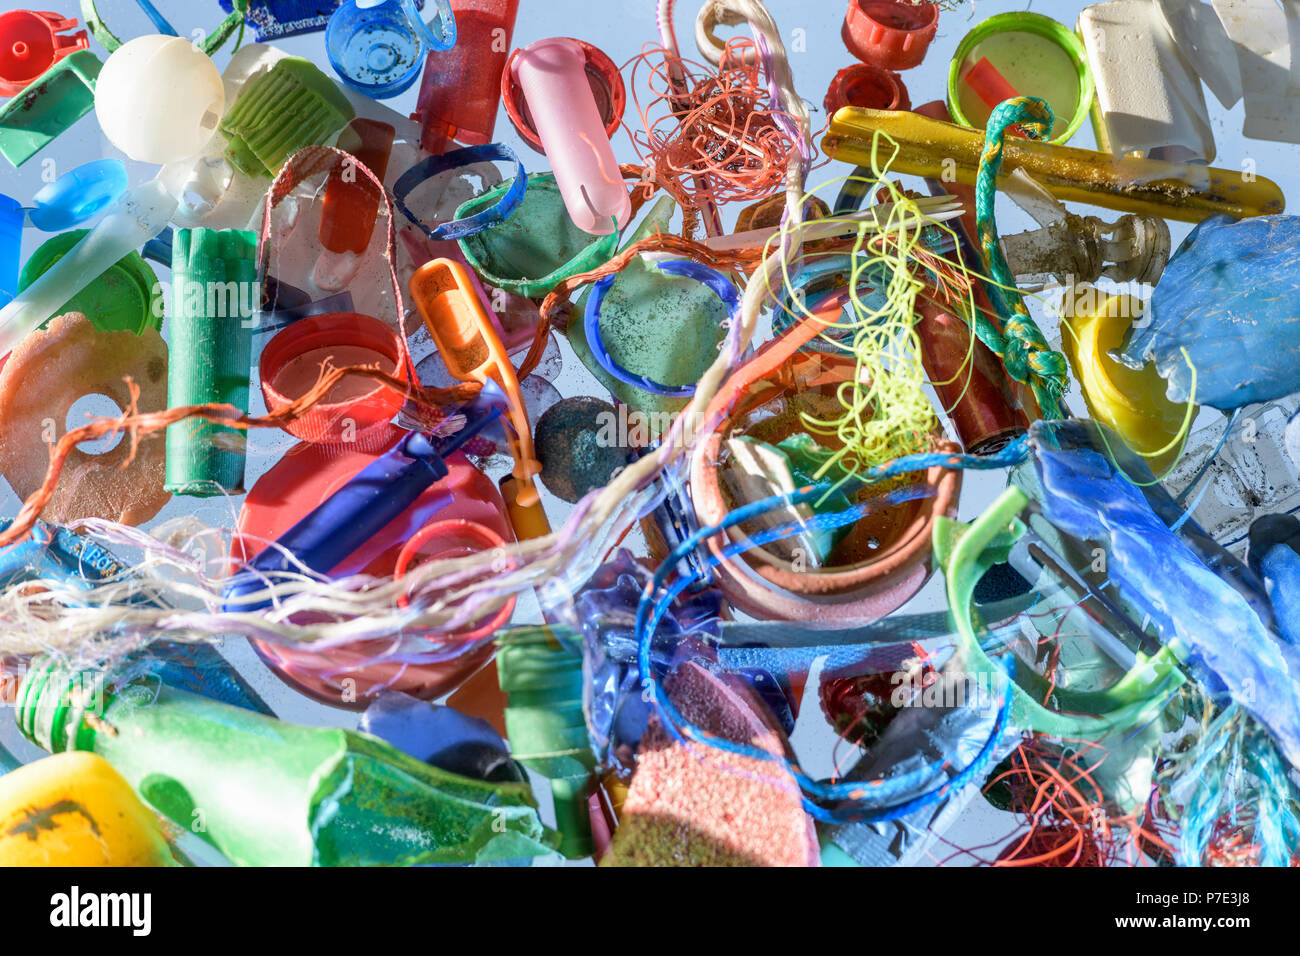 Discarded and polluting plastics collected from beach in North East England, UK - Stock Image